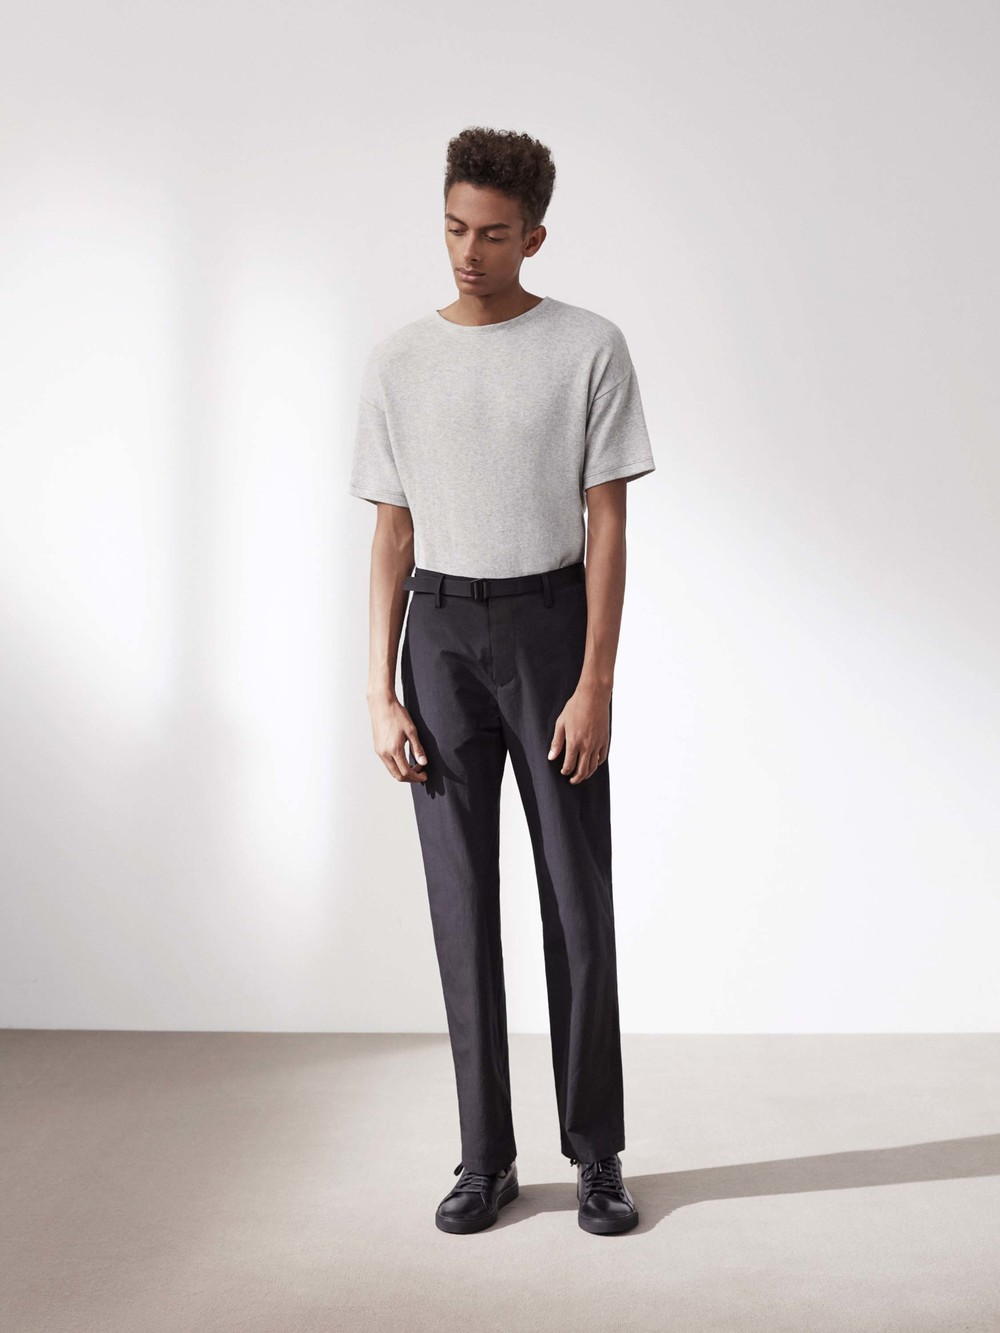 OuurMedia_OuurCollectionSS16_17.jpg